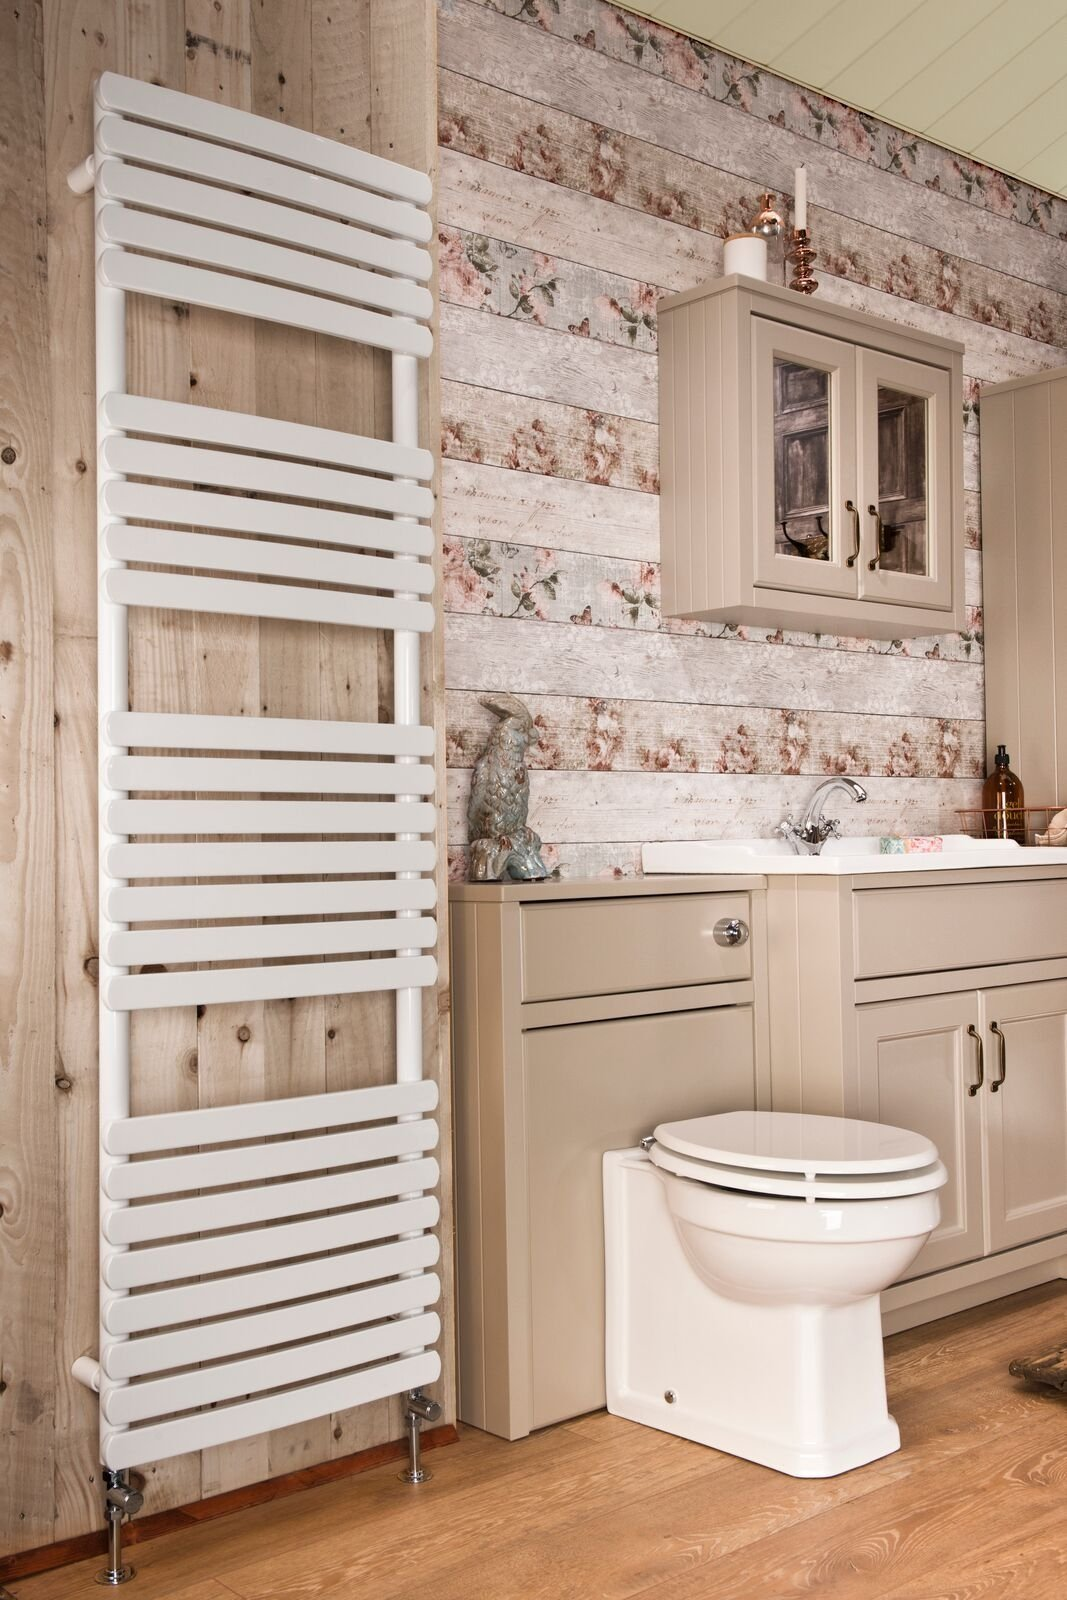 Cassellie Orchid Designer Heated Towel Rail - 1700mm x 500mm - White